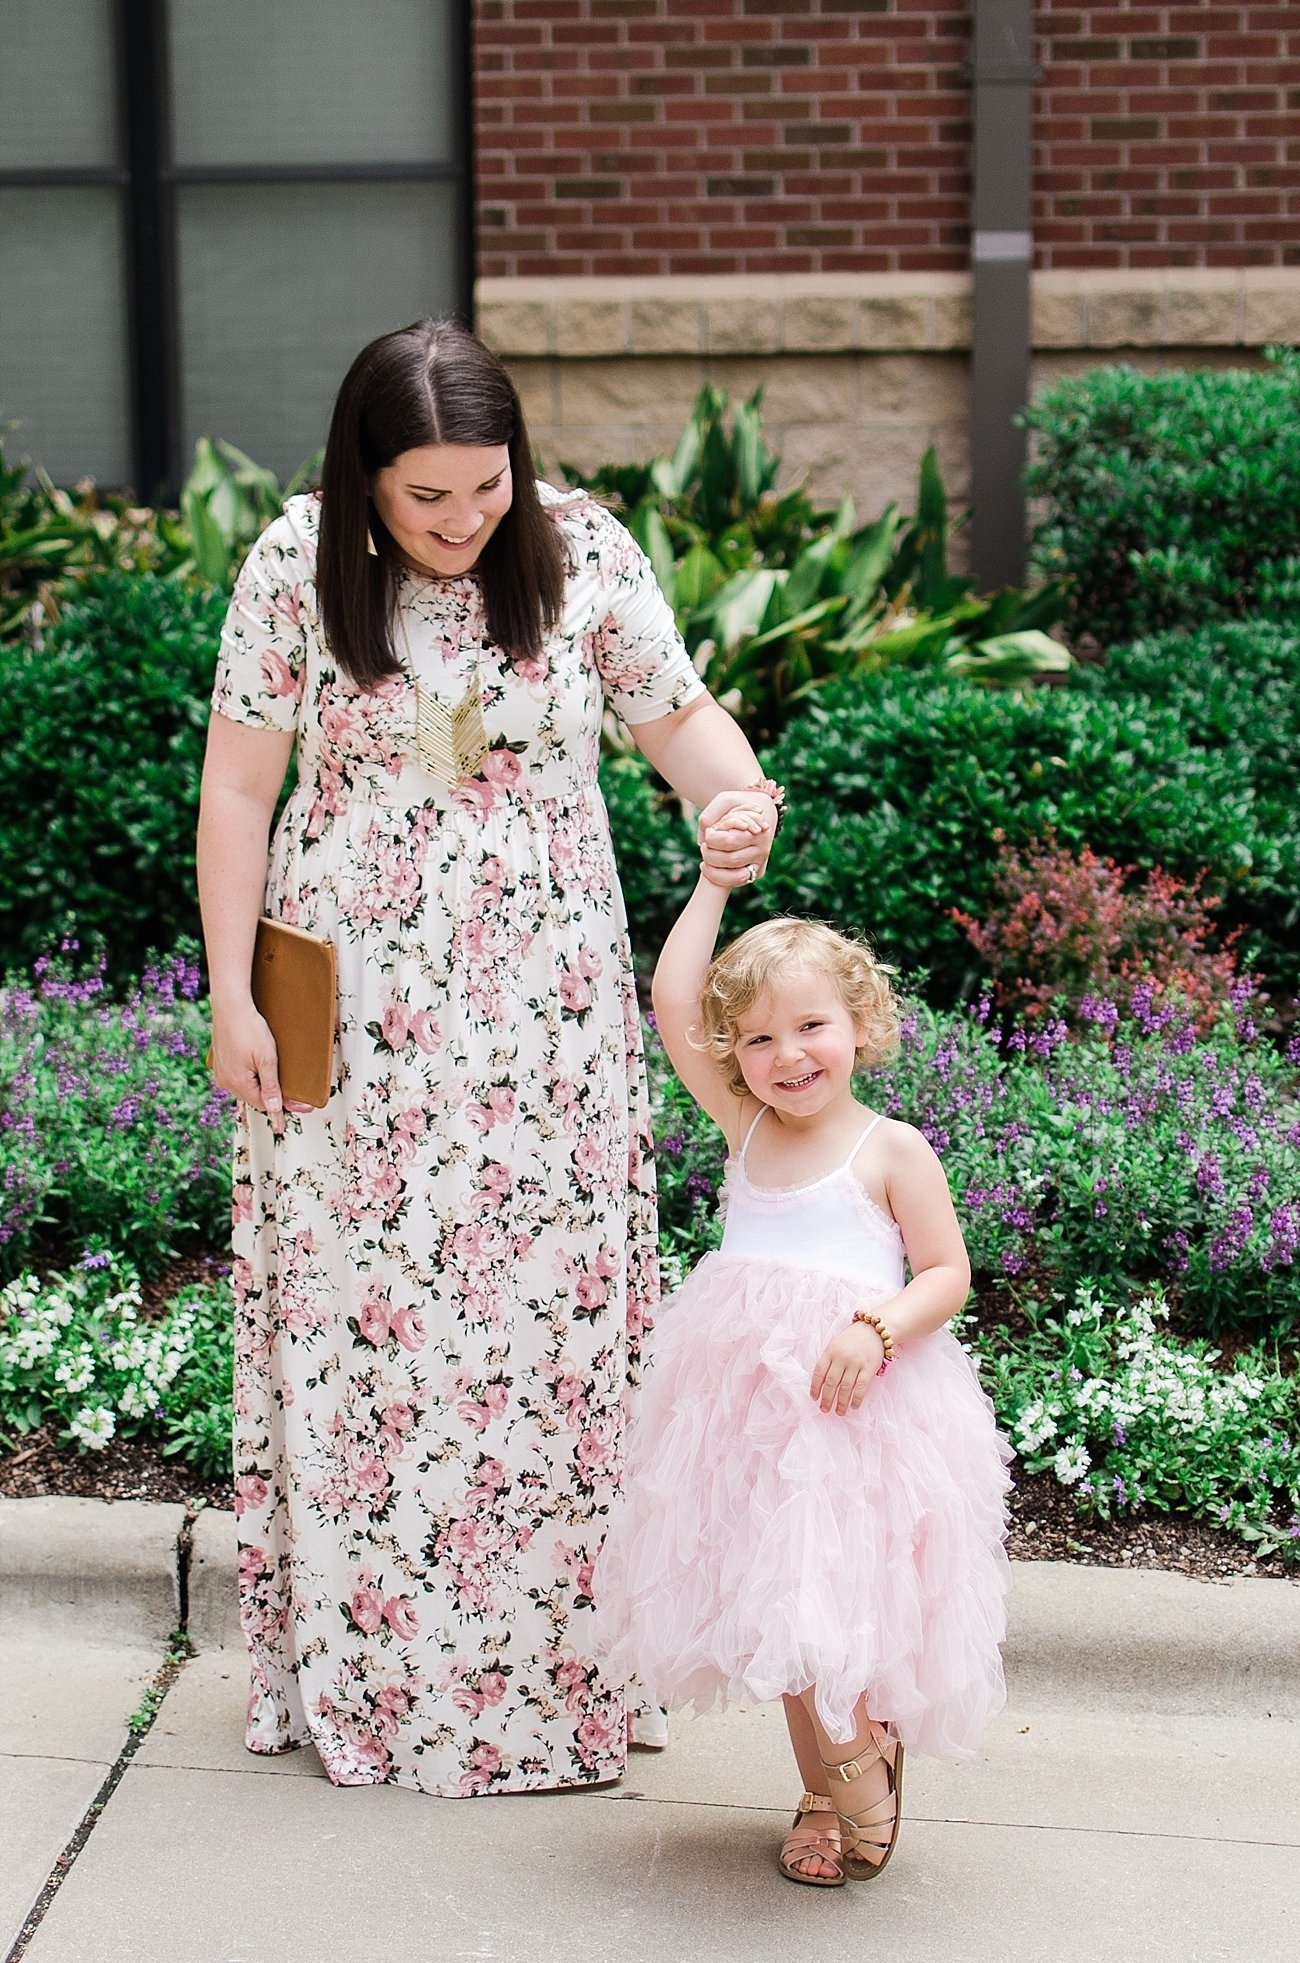 10 Amazing Mommy And Me Picture Ideas wedding guest outfit ethical fashion still being molly 2021